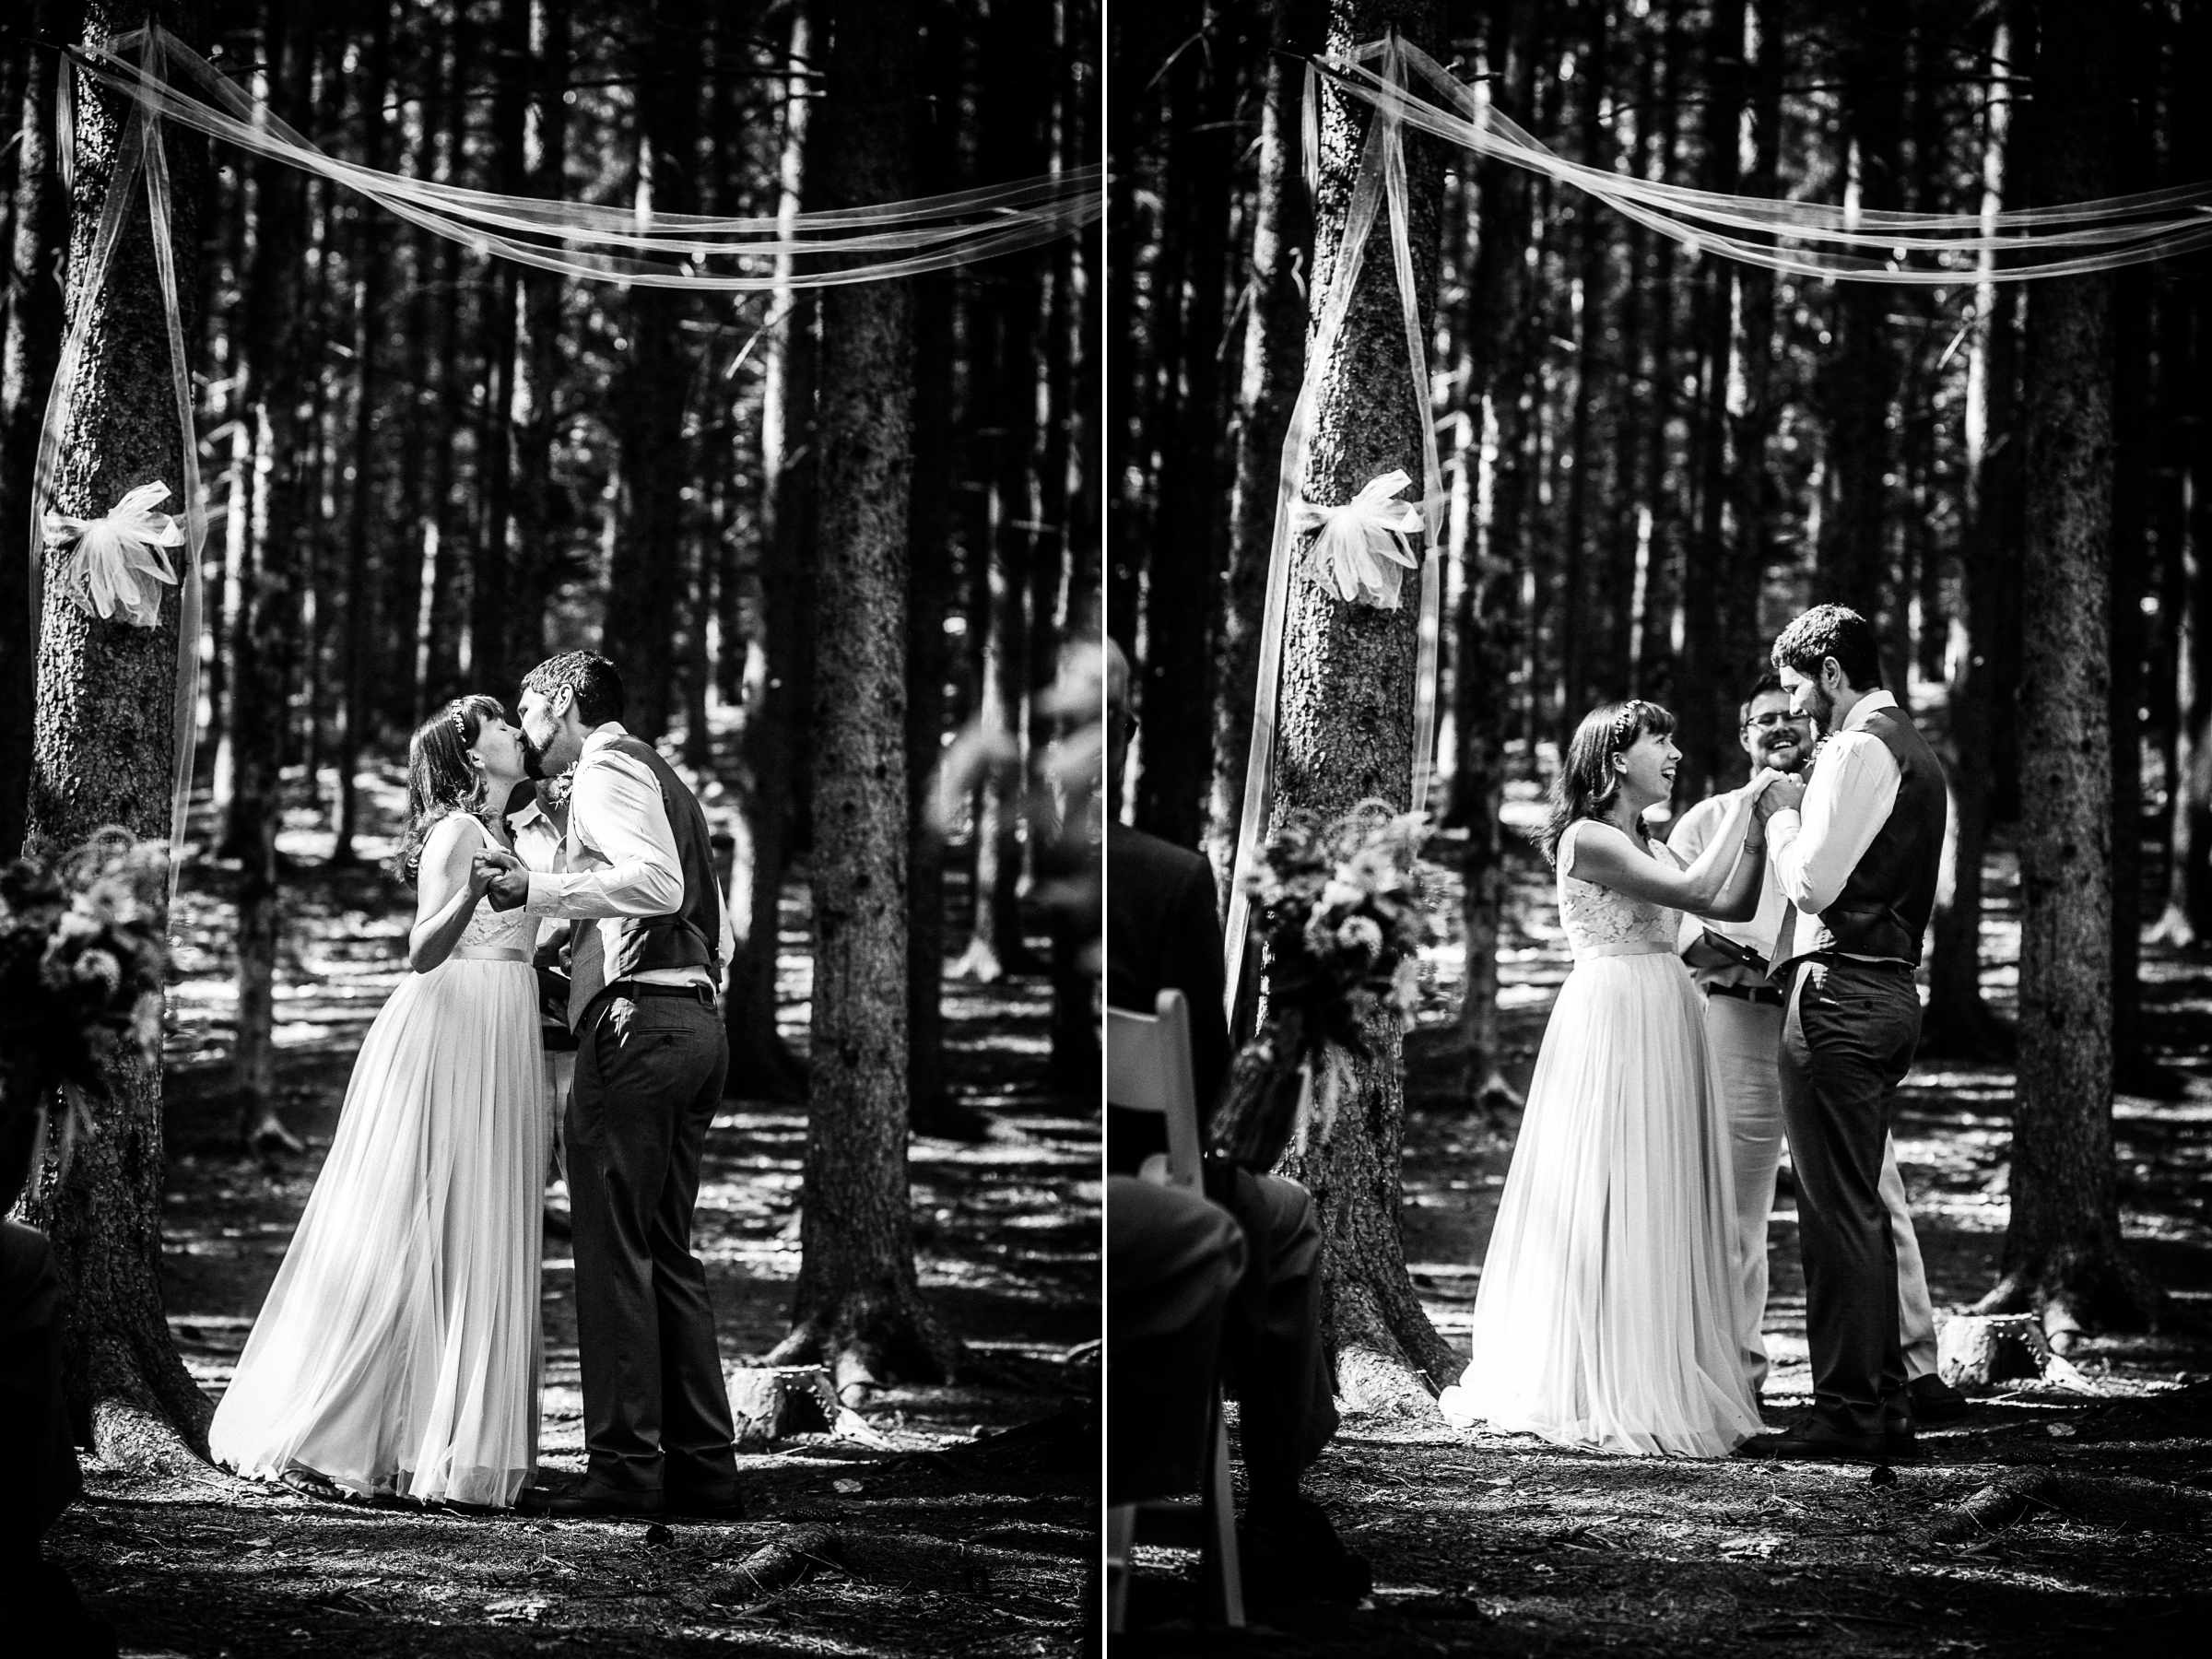 The bride and groom very happily exchange their first kiss as husband and  wife